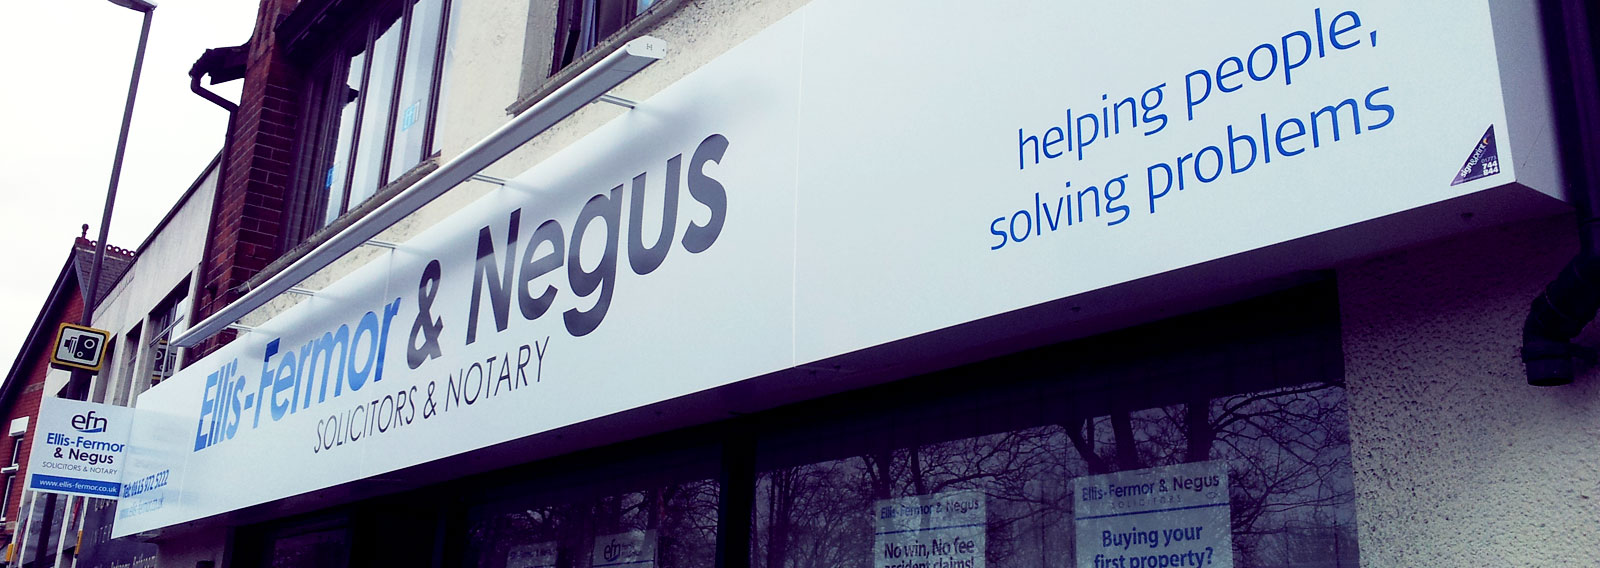 ellis-fermor and negus exterior sign